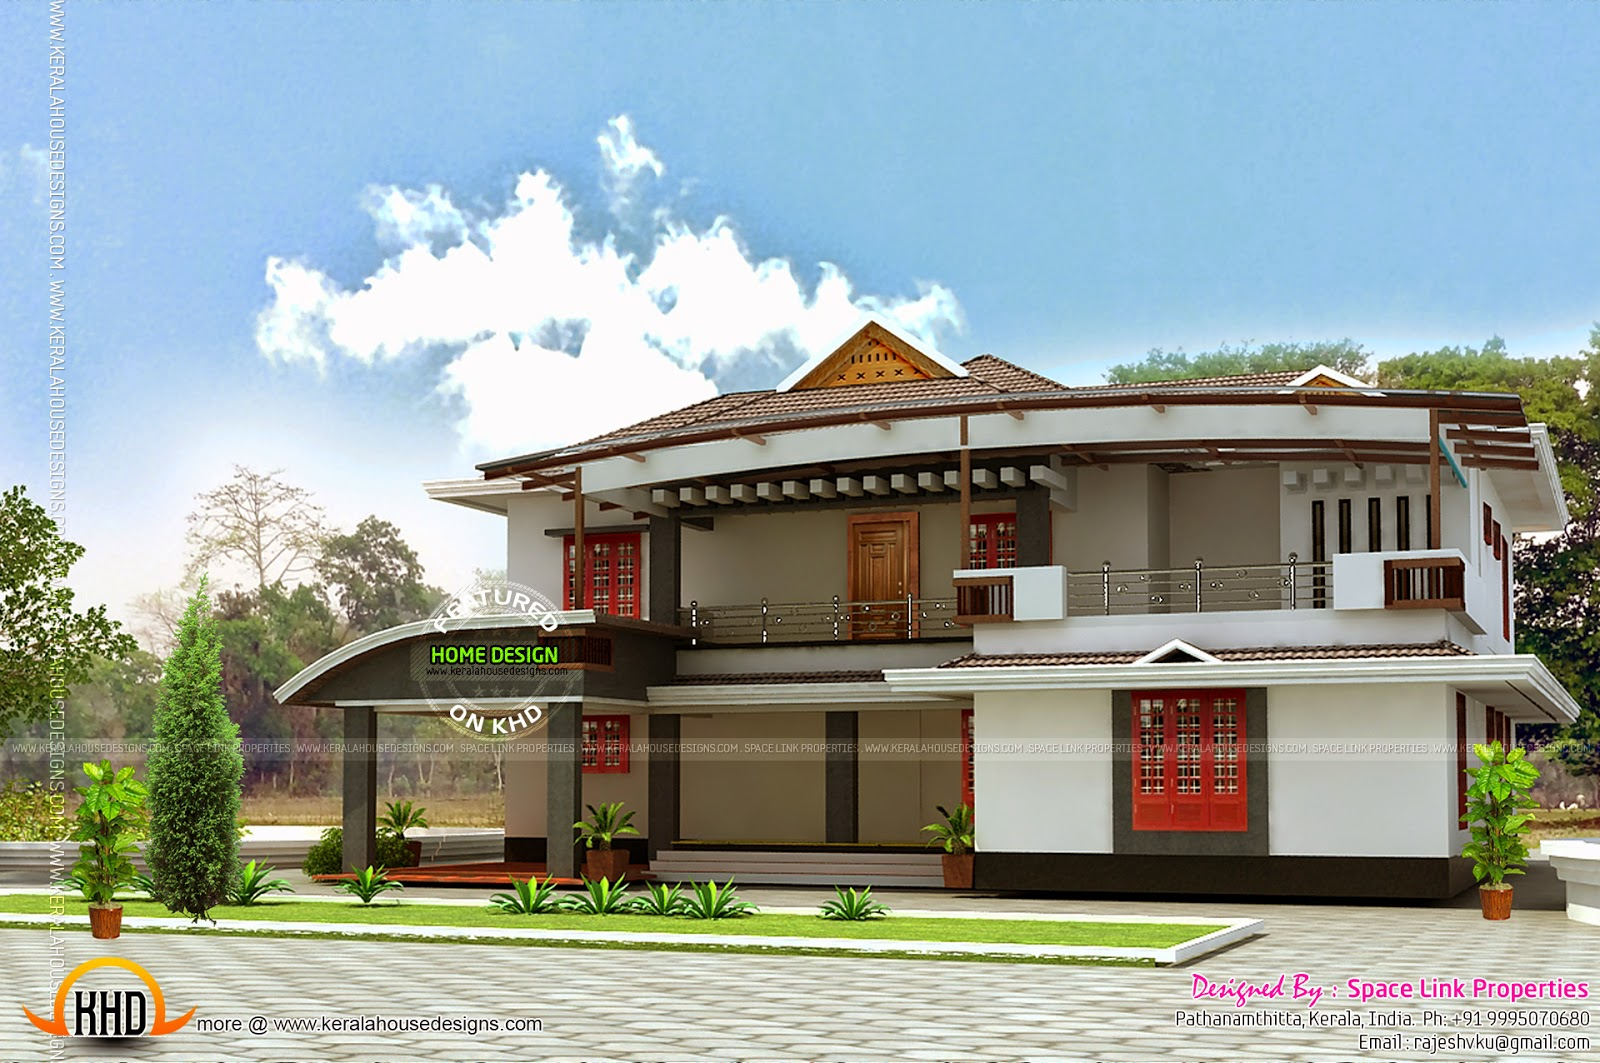 Elevation Front Look : Elevation side and front view kerala home design